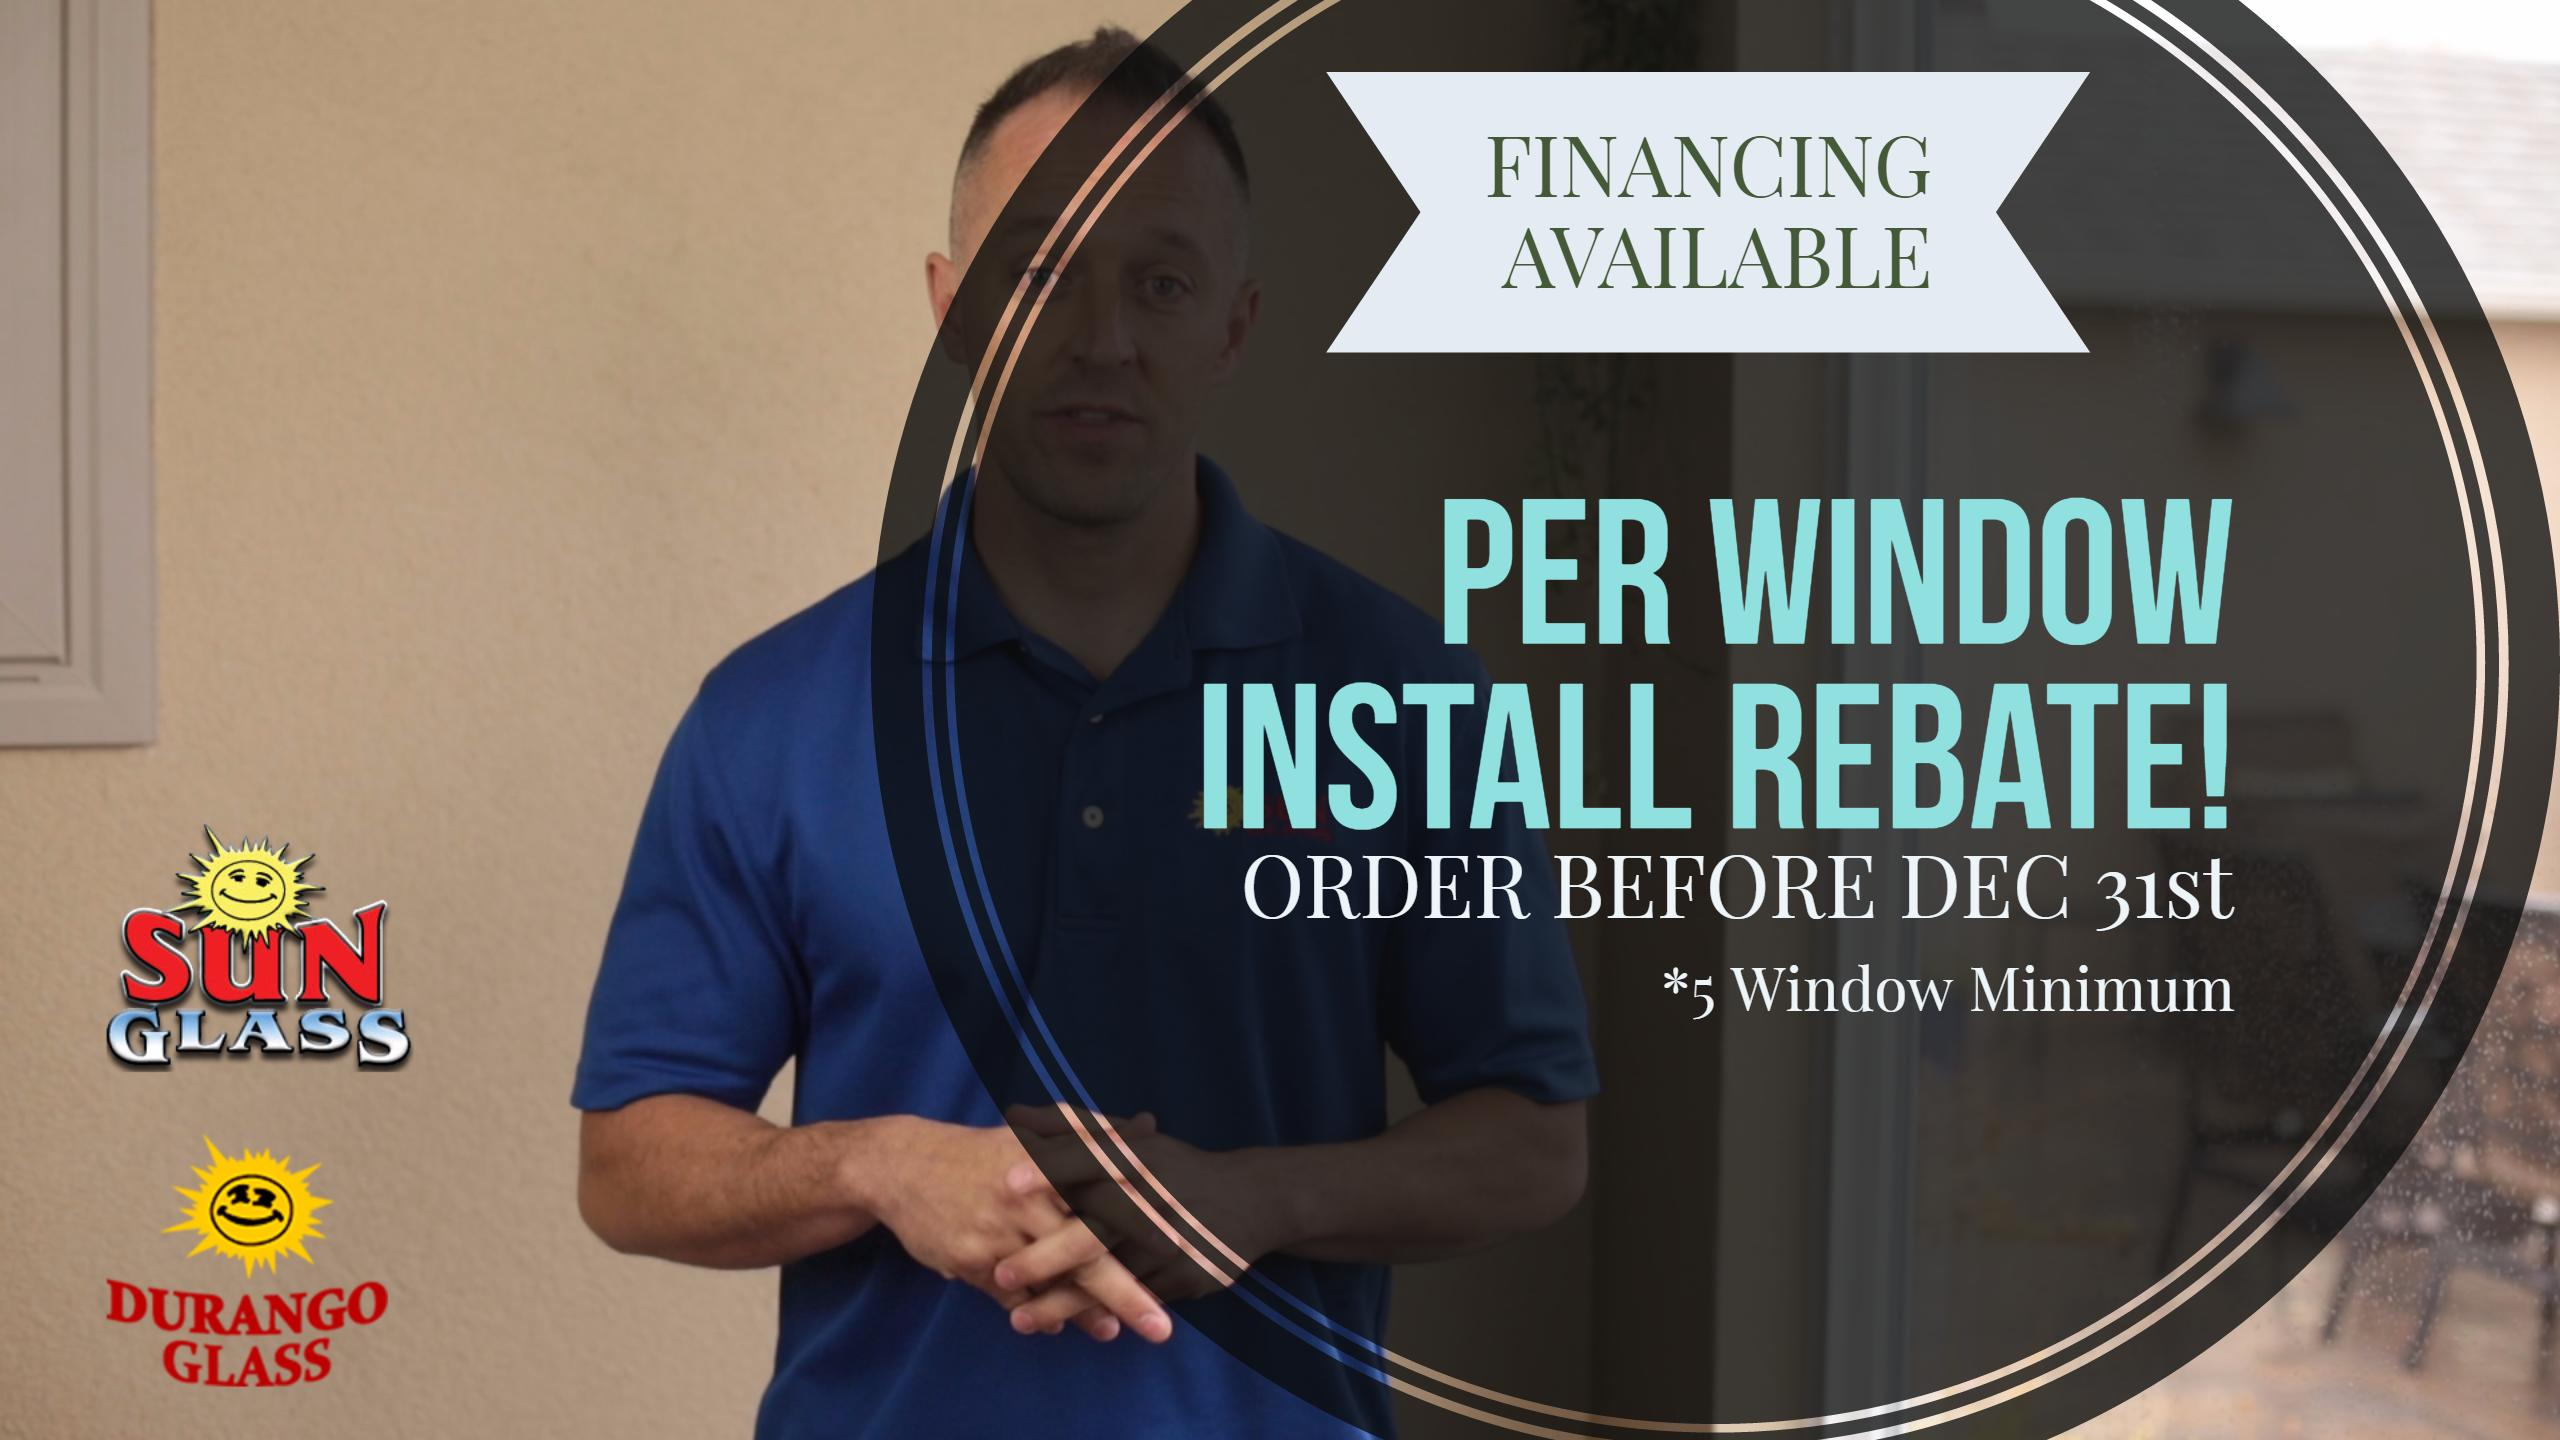 windows rebate in cortez nm through december for installations special